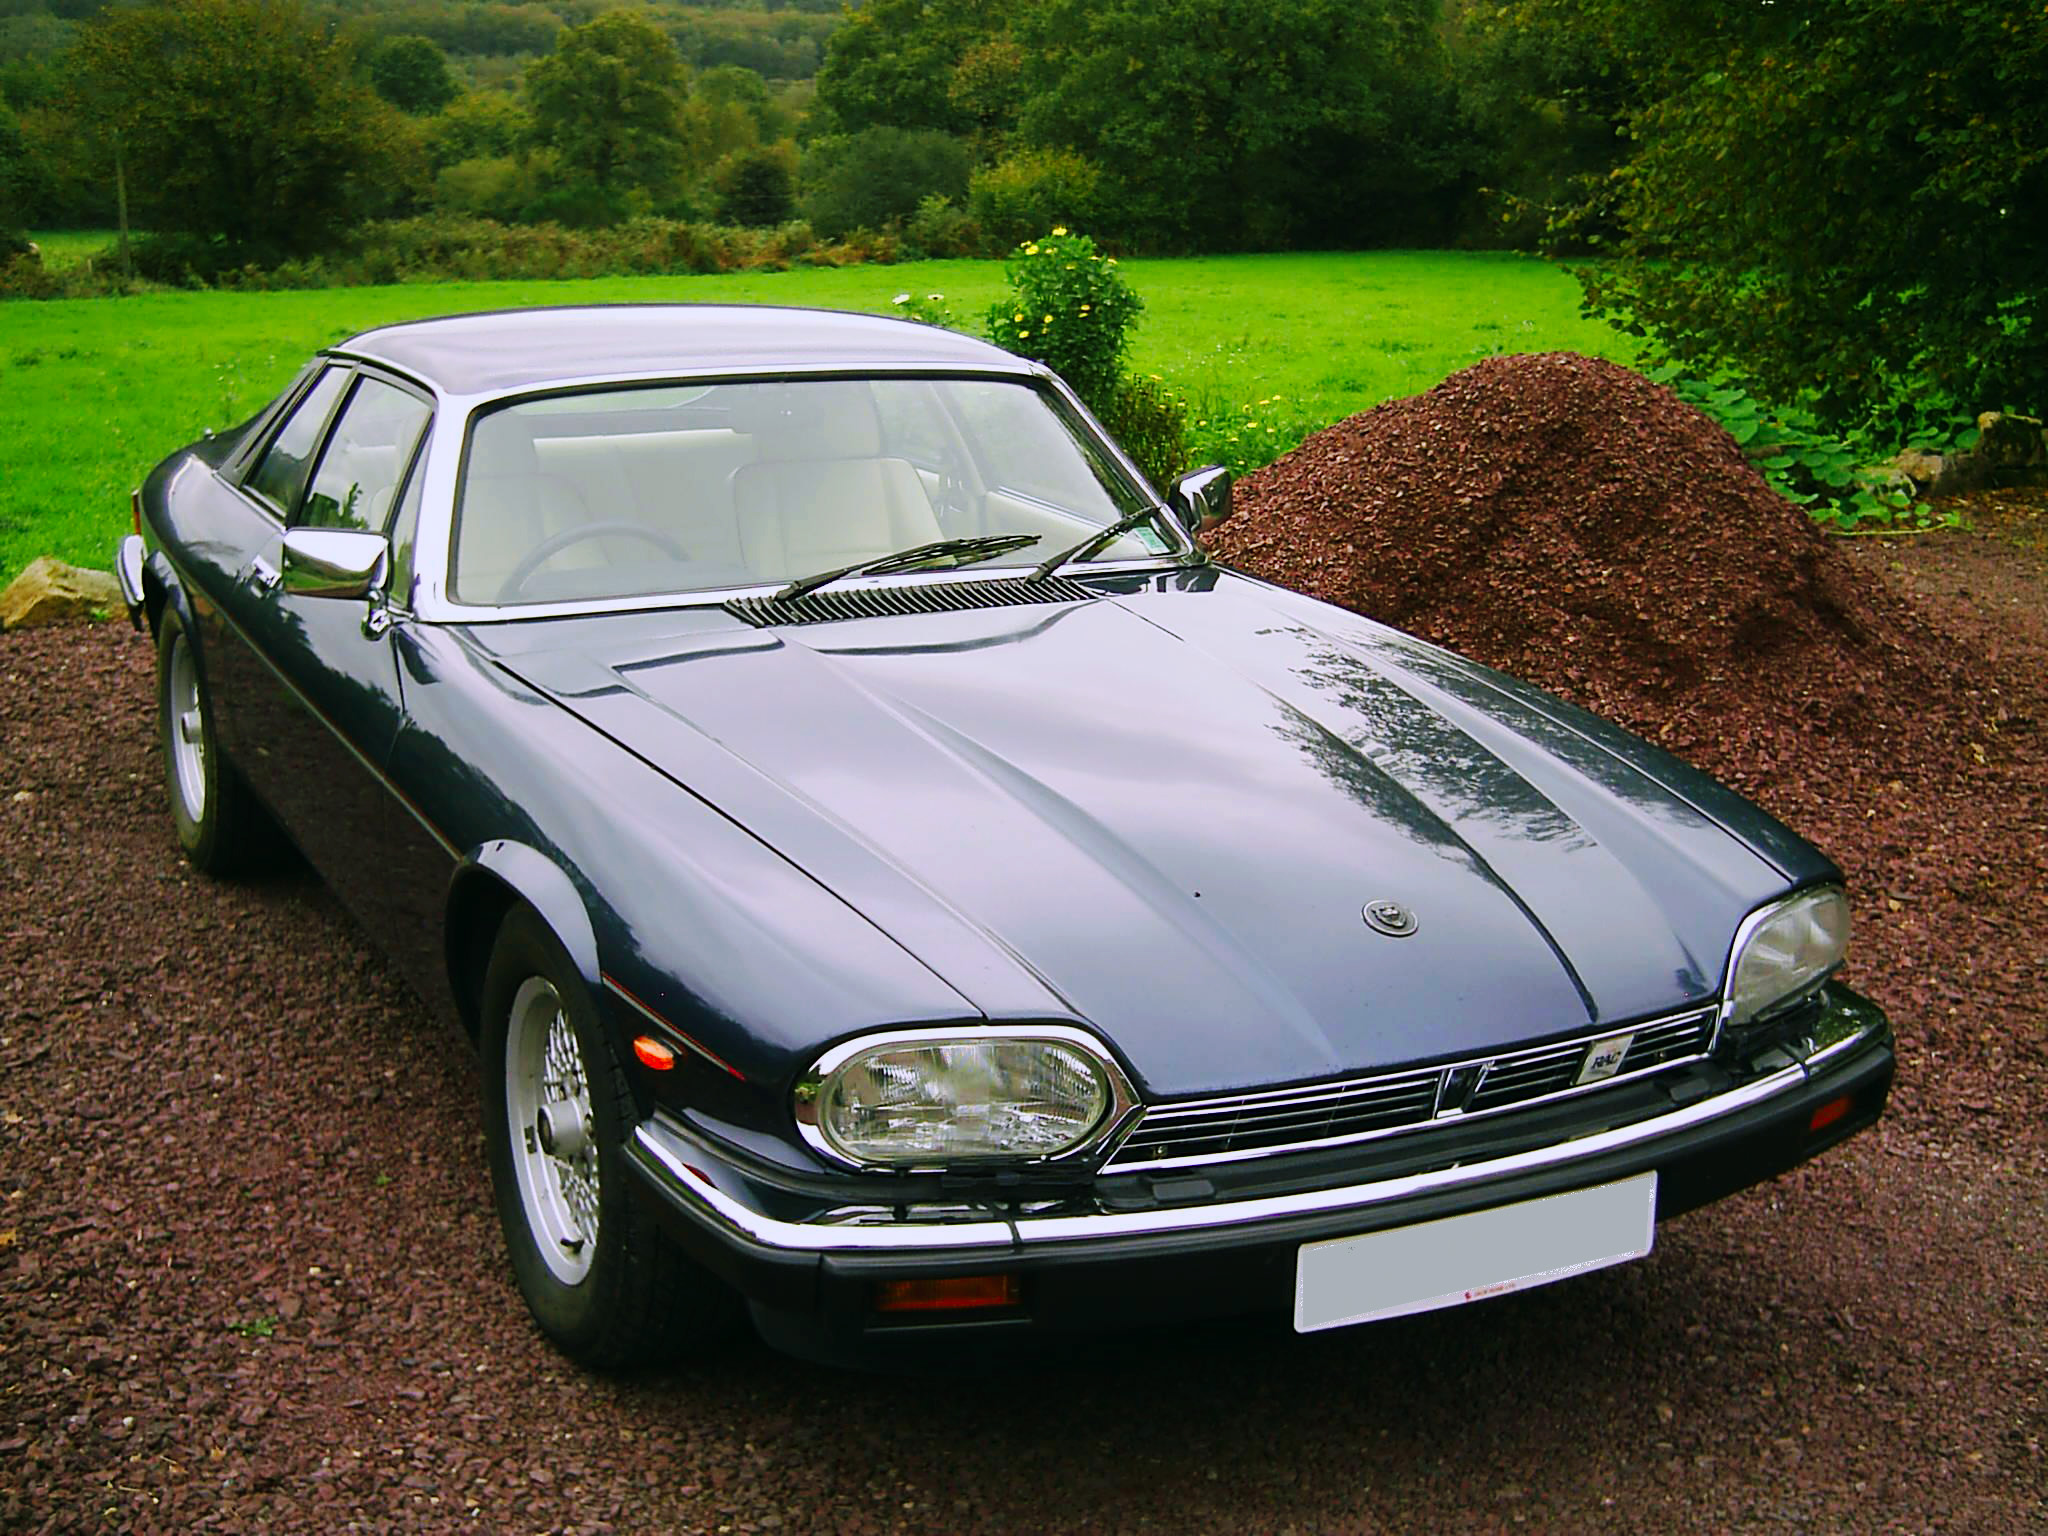 1991 Jaguar Xj-series #13